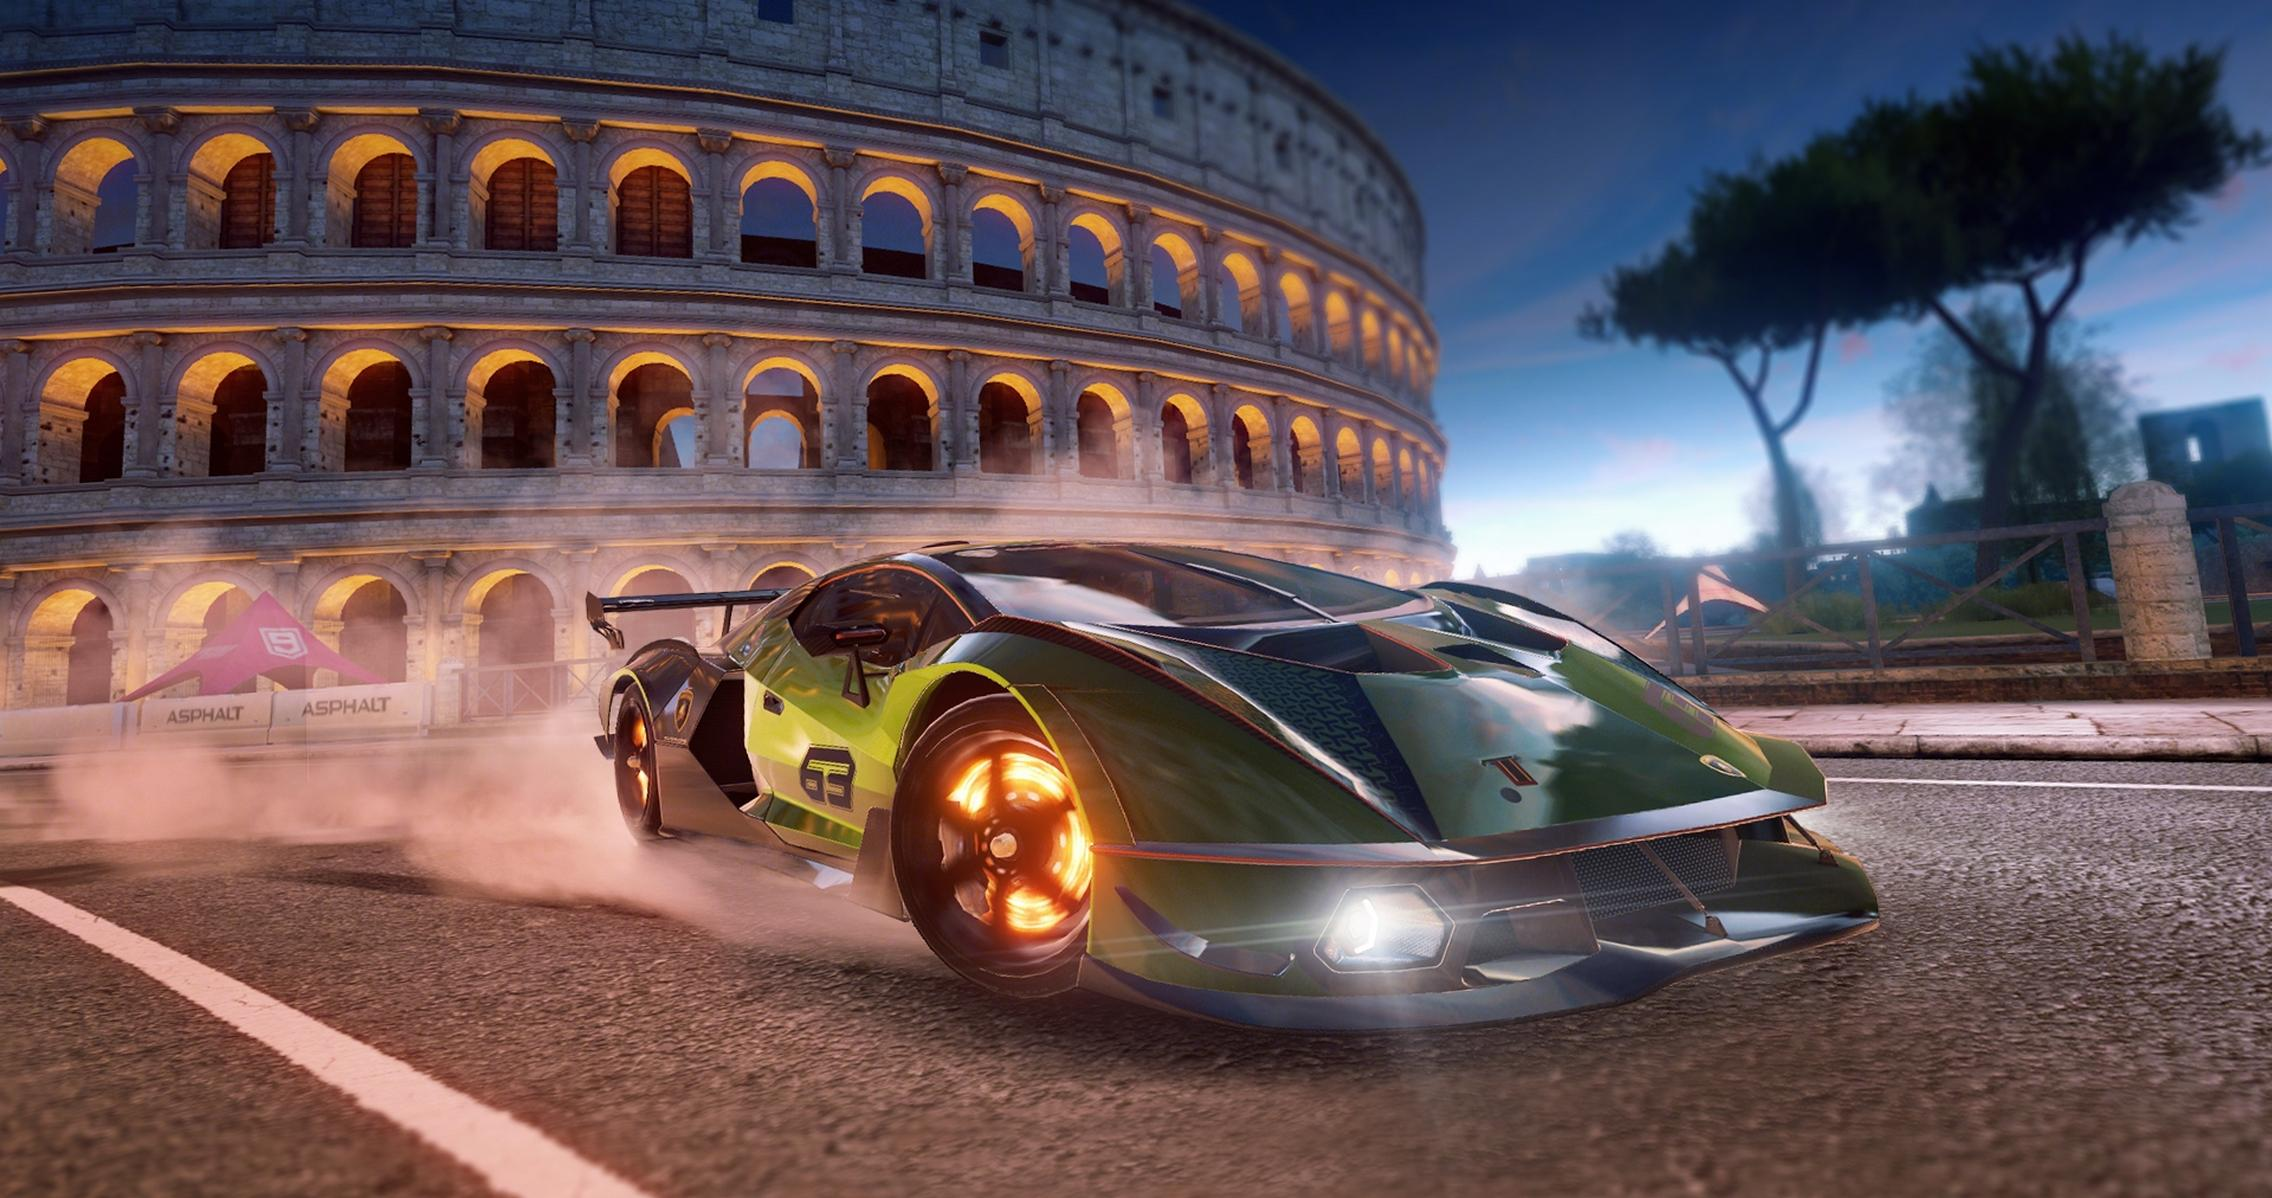 Lamborghini Joins Asphalt 9 Legends with the Essenza SCV12 Hypercar